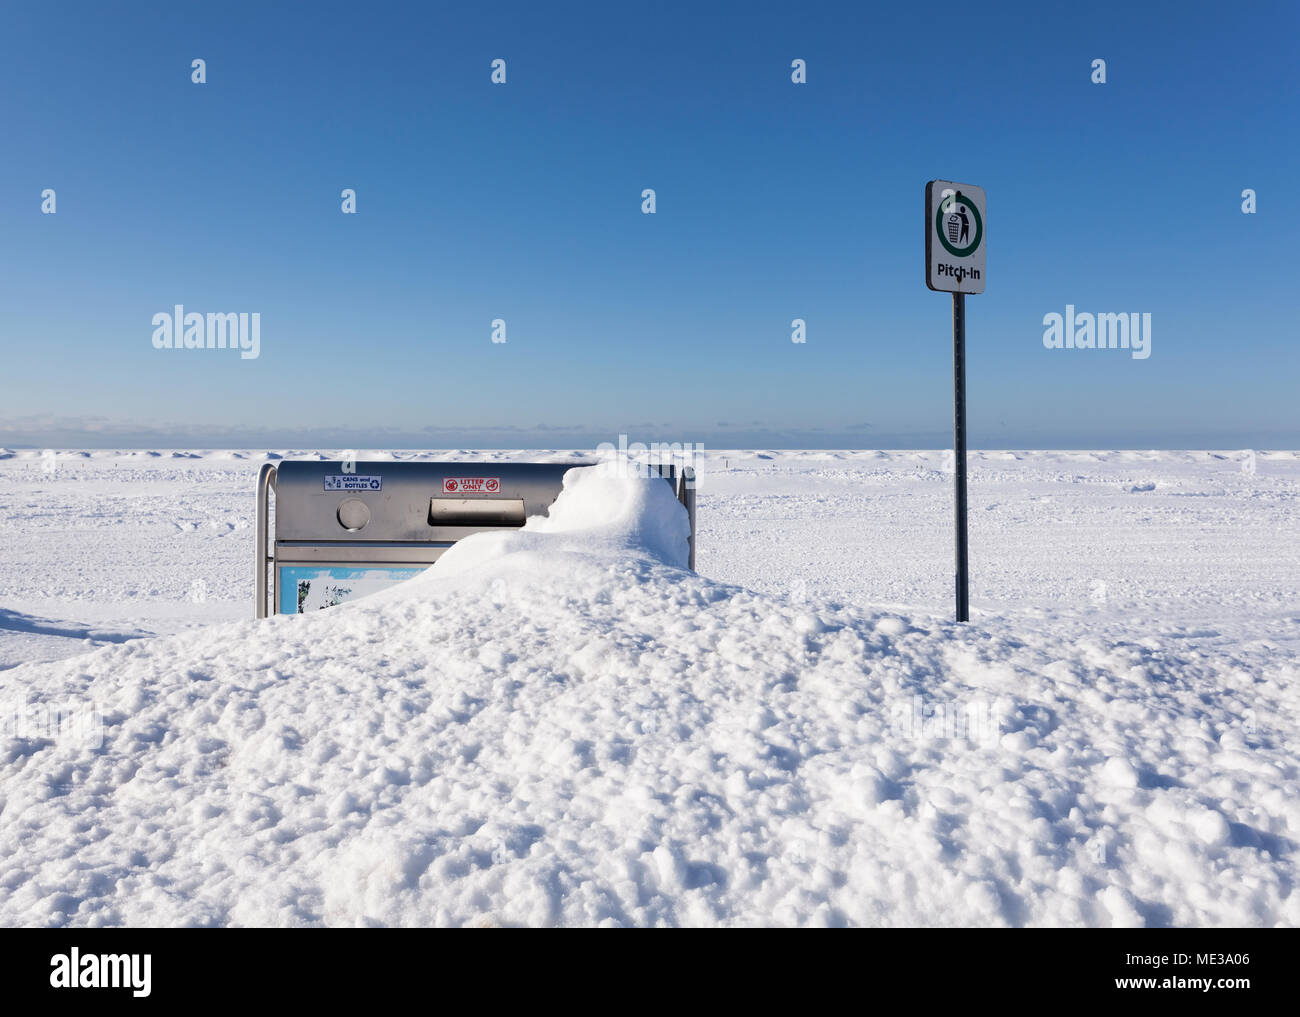 A garbage can almost completely buried in snow along the Georgian Bay Coastline at Wasaga Beach, Ontario, Canada. - Stock Image